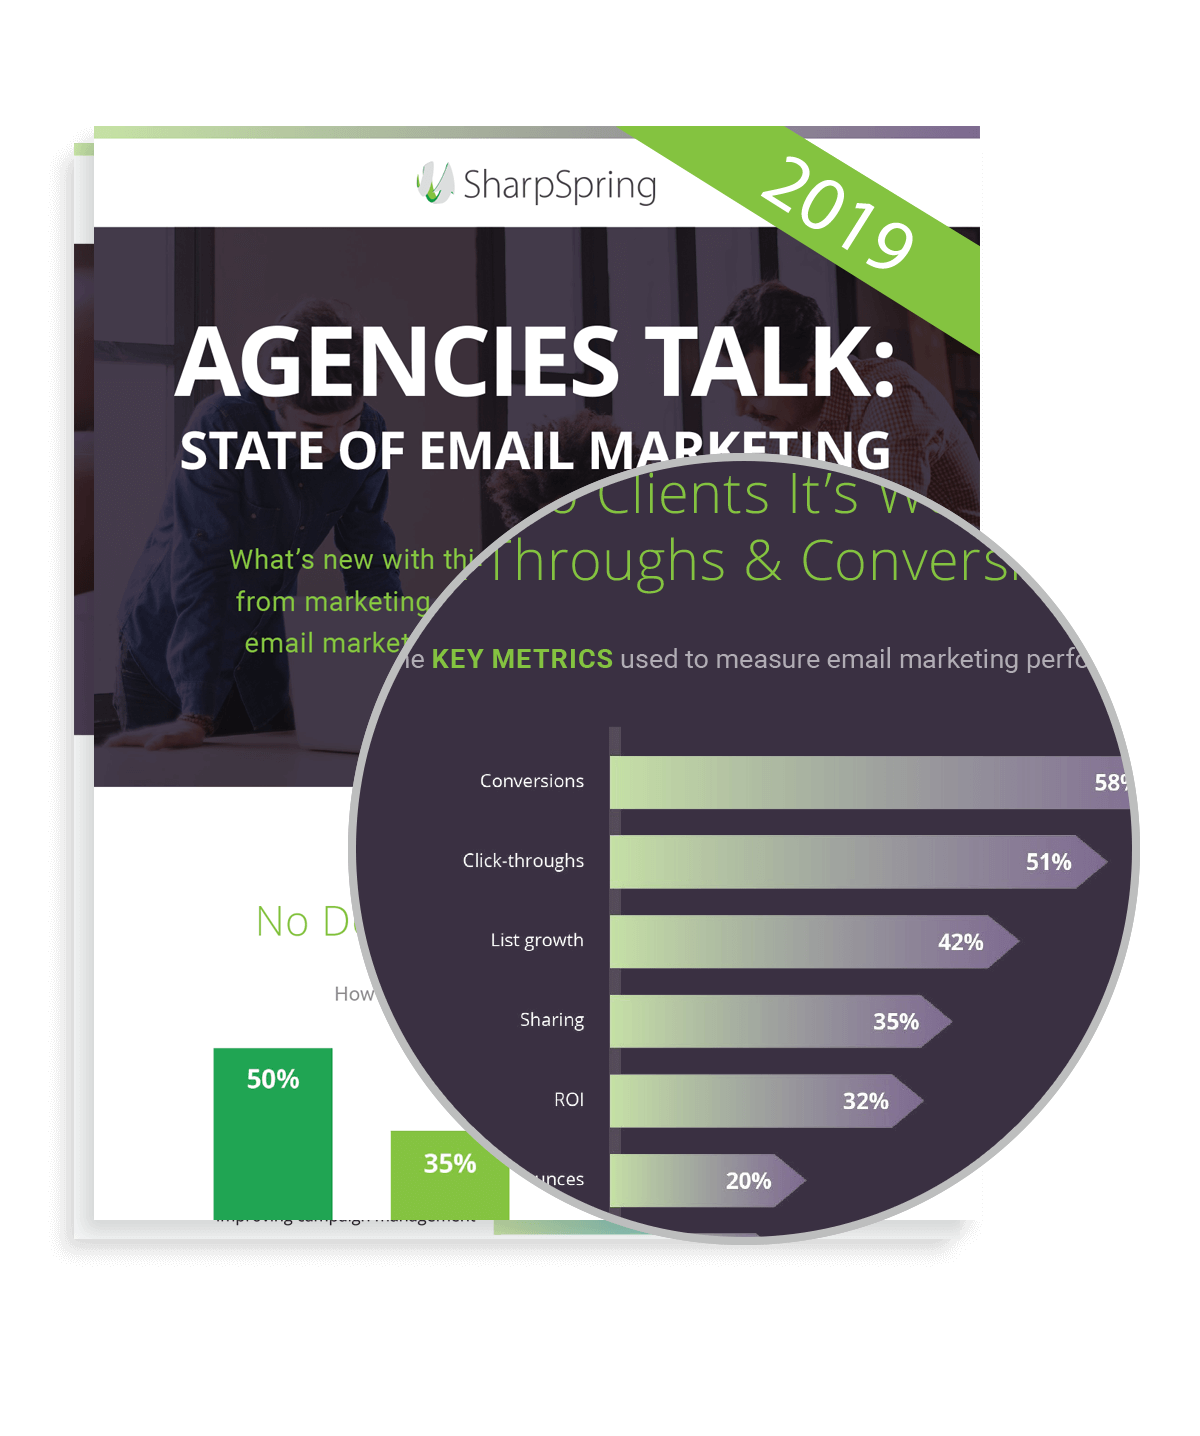 The State of Email Marketing for Agencies